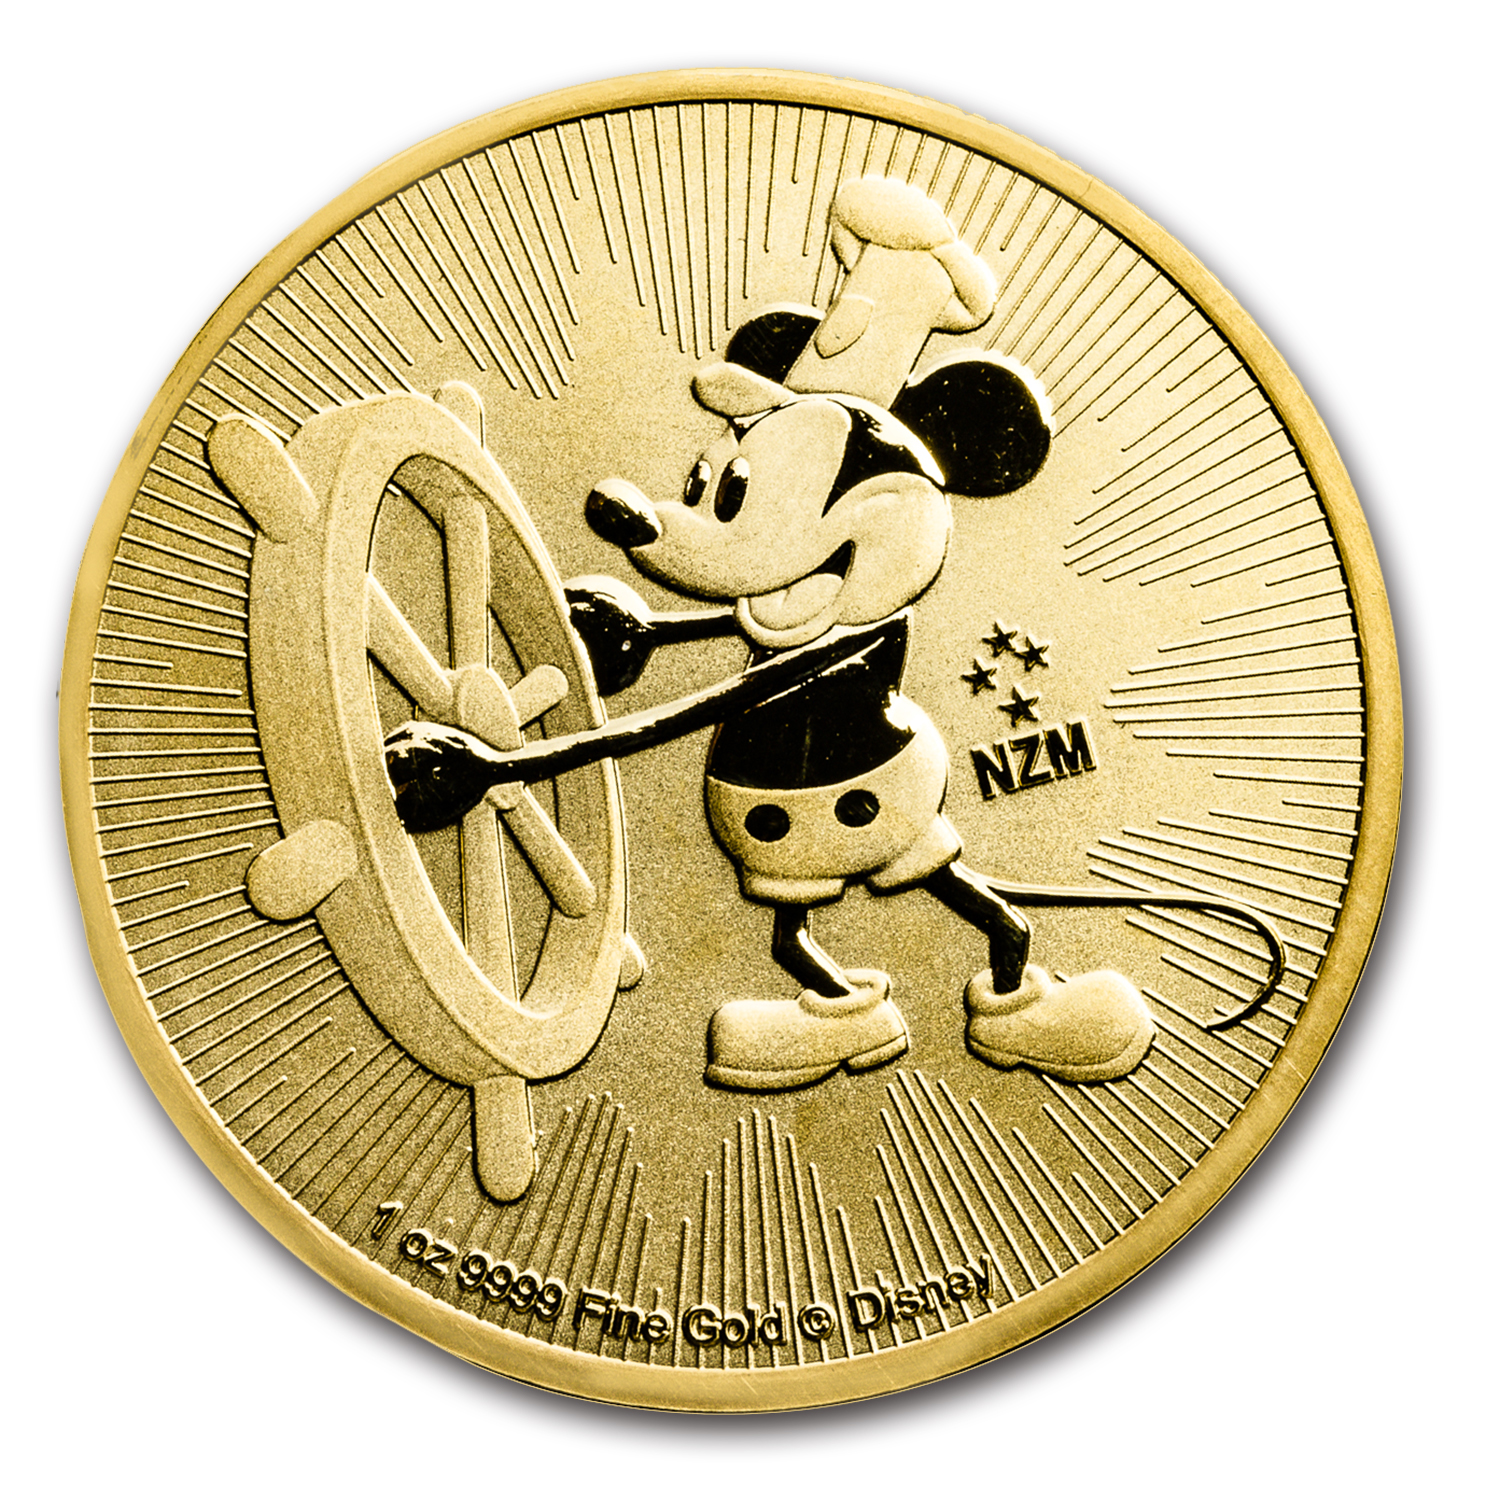 2017 Niue 1 oz Gold $250 Disney Steamboat Willie BU